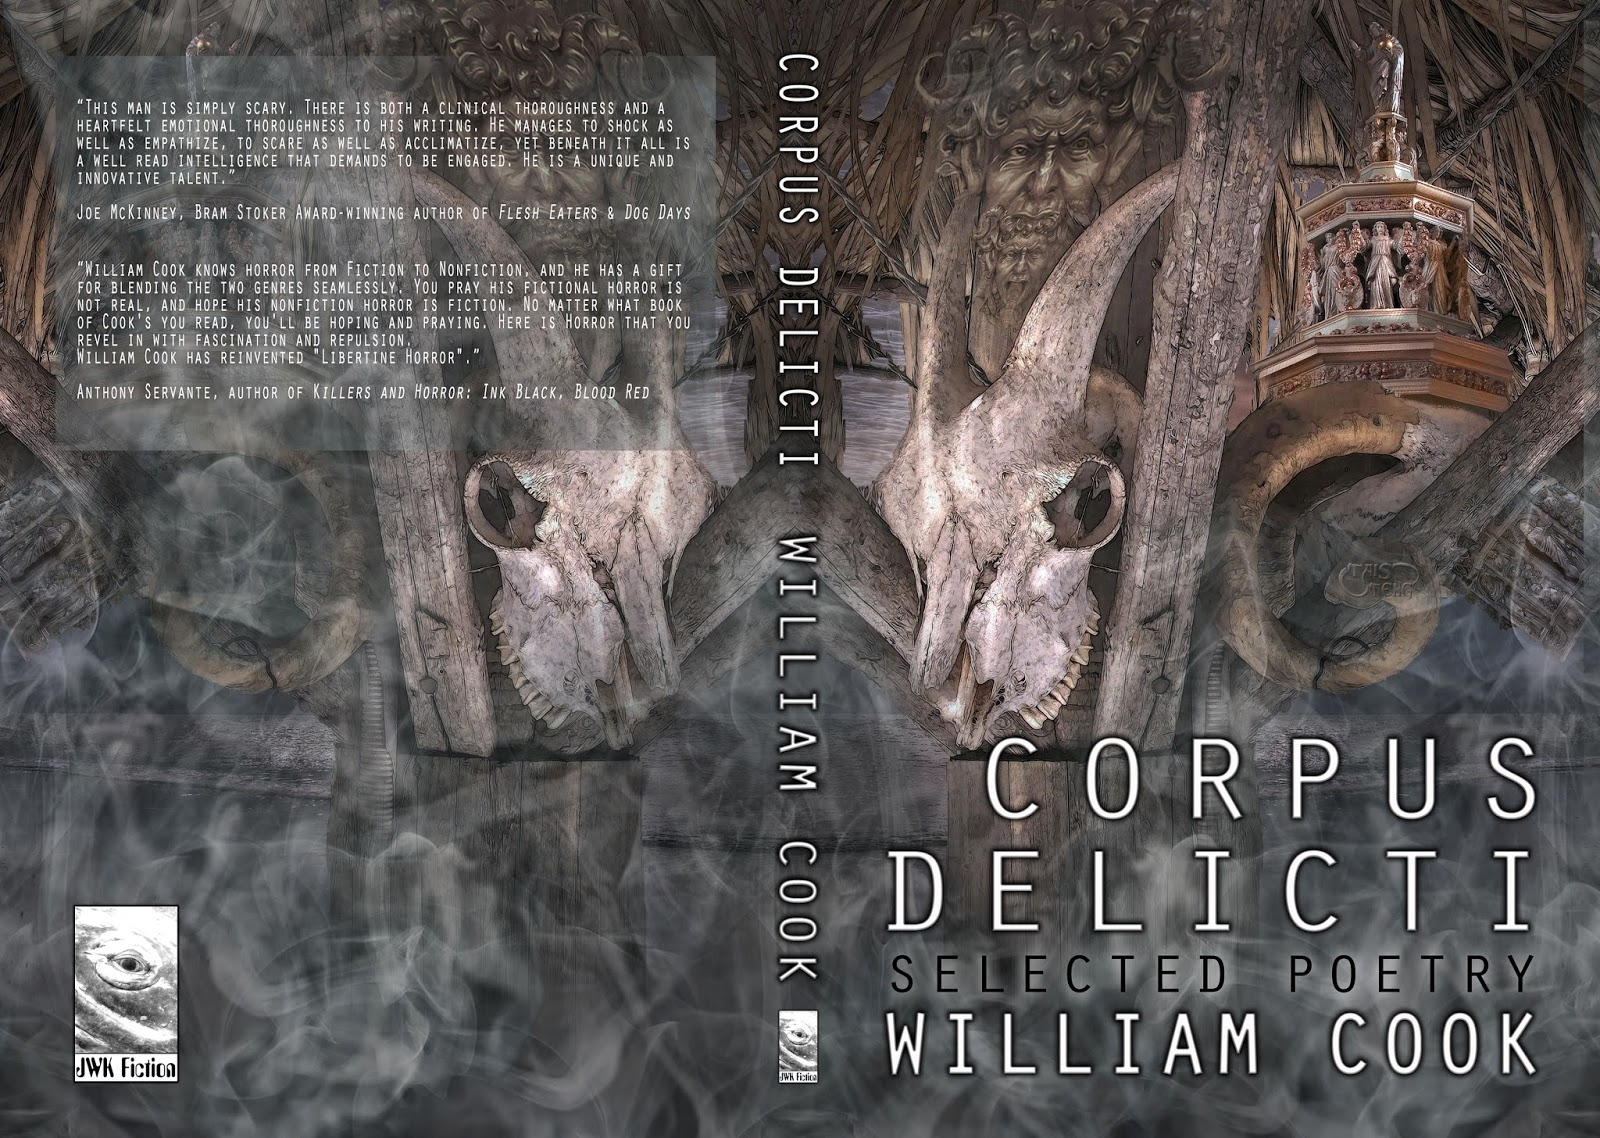 http://www.amazon.com/Corpus-Delicti-William-Cook-ebook/dp/B00K2AY04A/ref=sr_1_1?s=digital-text&ie=UTF8&qid=1401082312&sr=1-1&keywords=william+cook+corpus+delicti